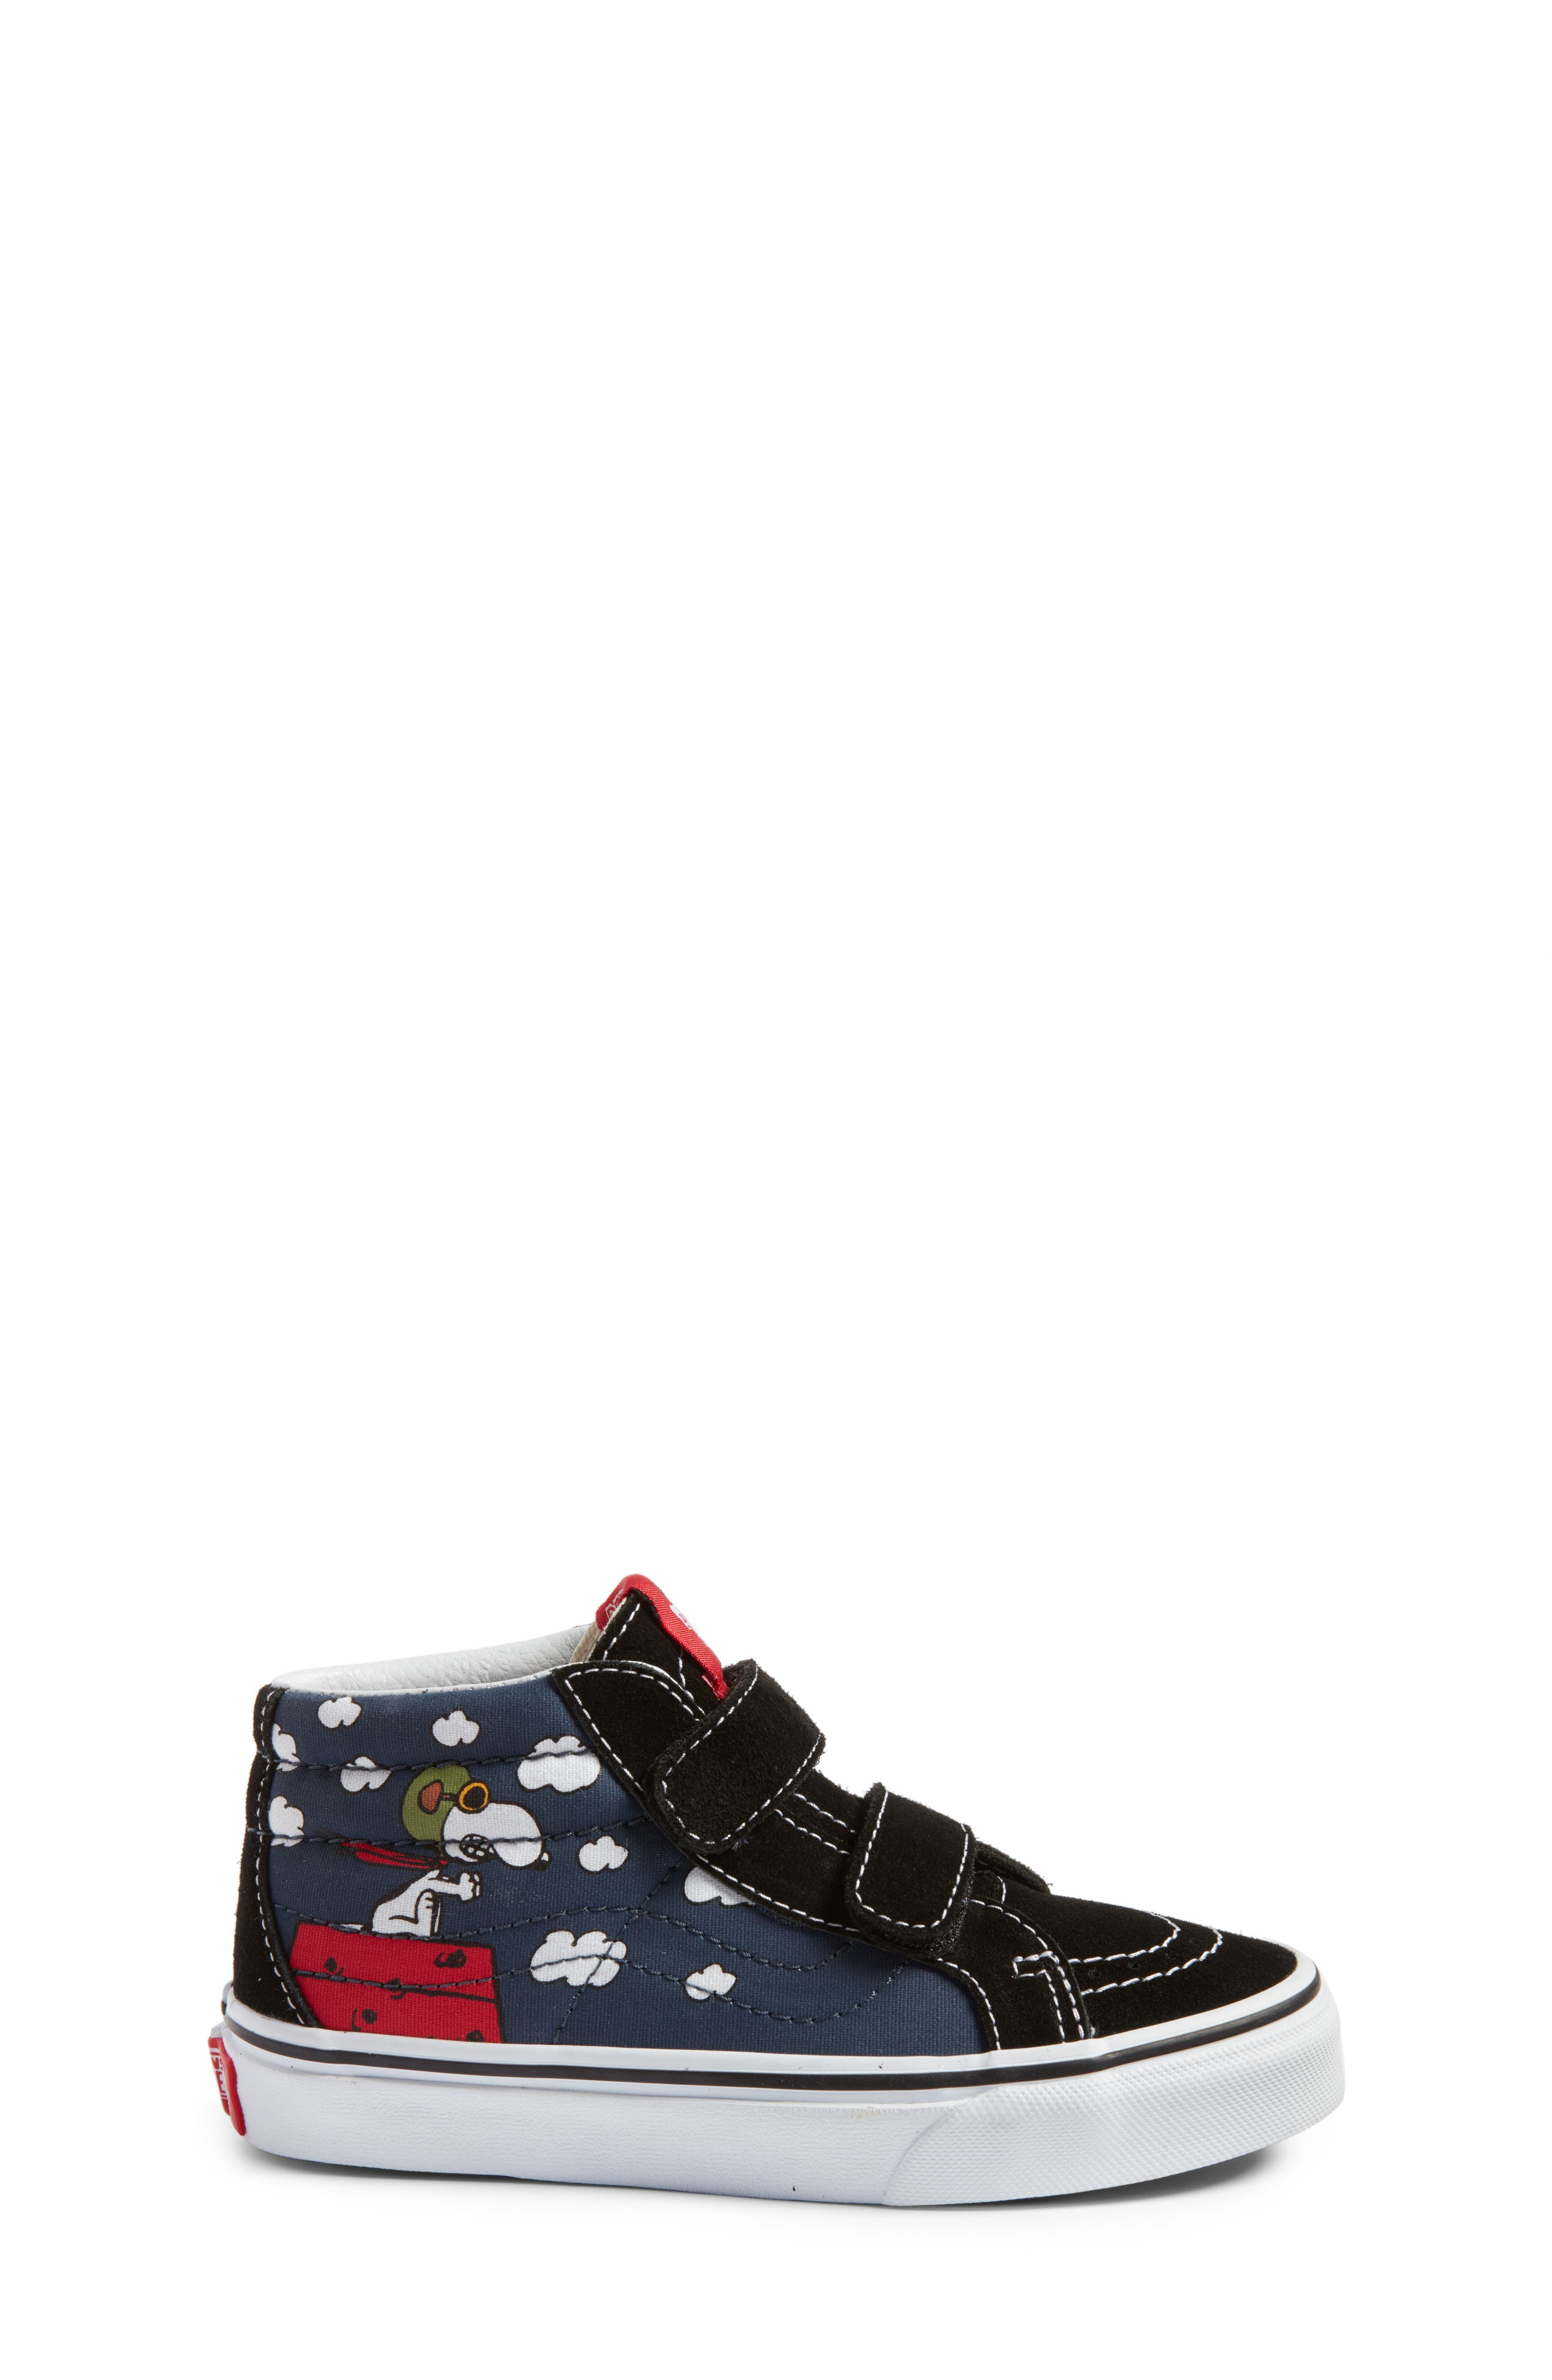 x Peanuts SK8-Mid Reissue V Sneaker,                             Alternate thumbnail 3, color,                             Flying Ace/ Blue Canvas